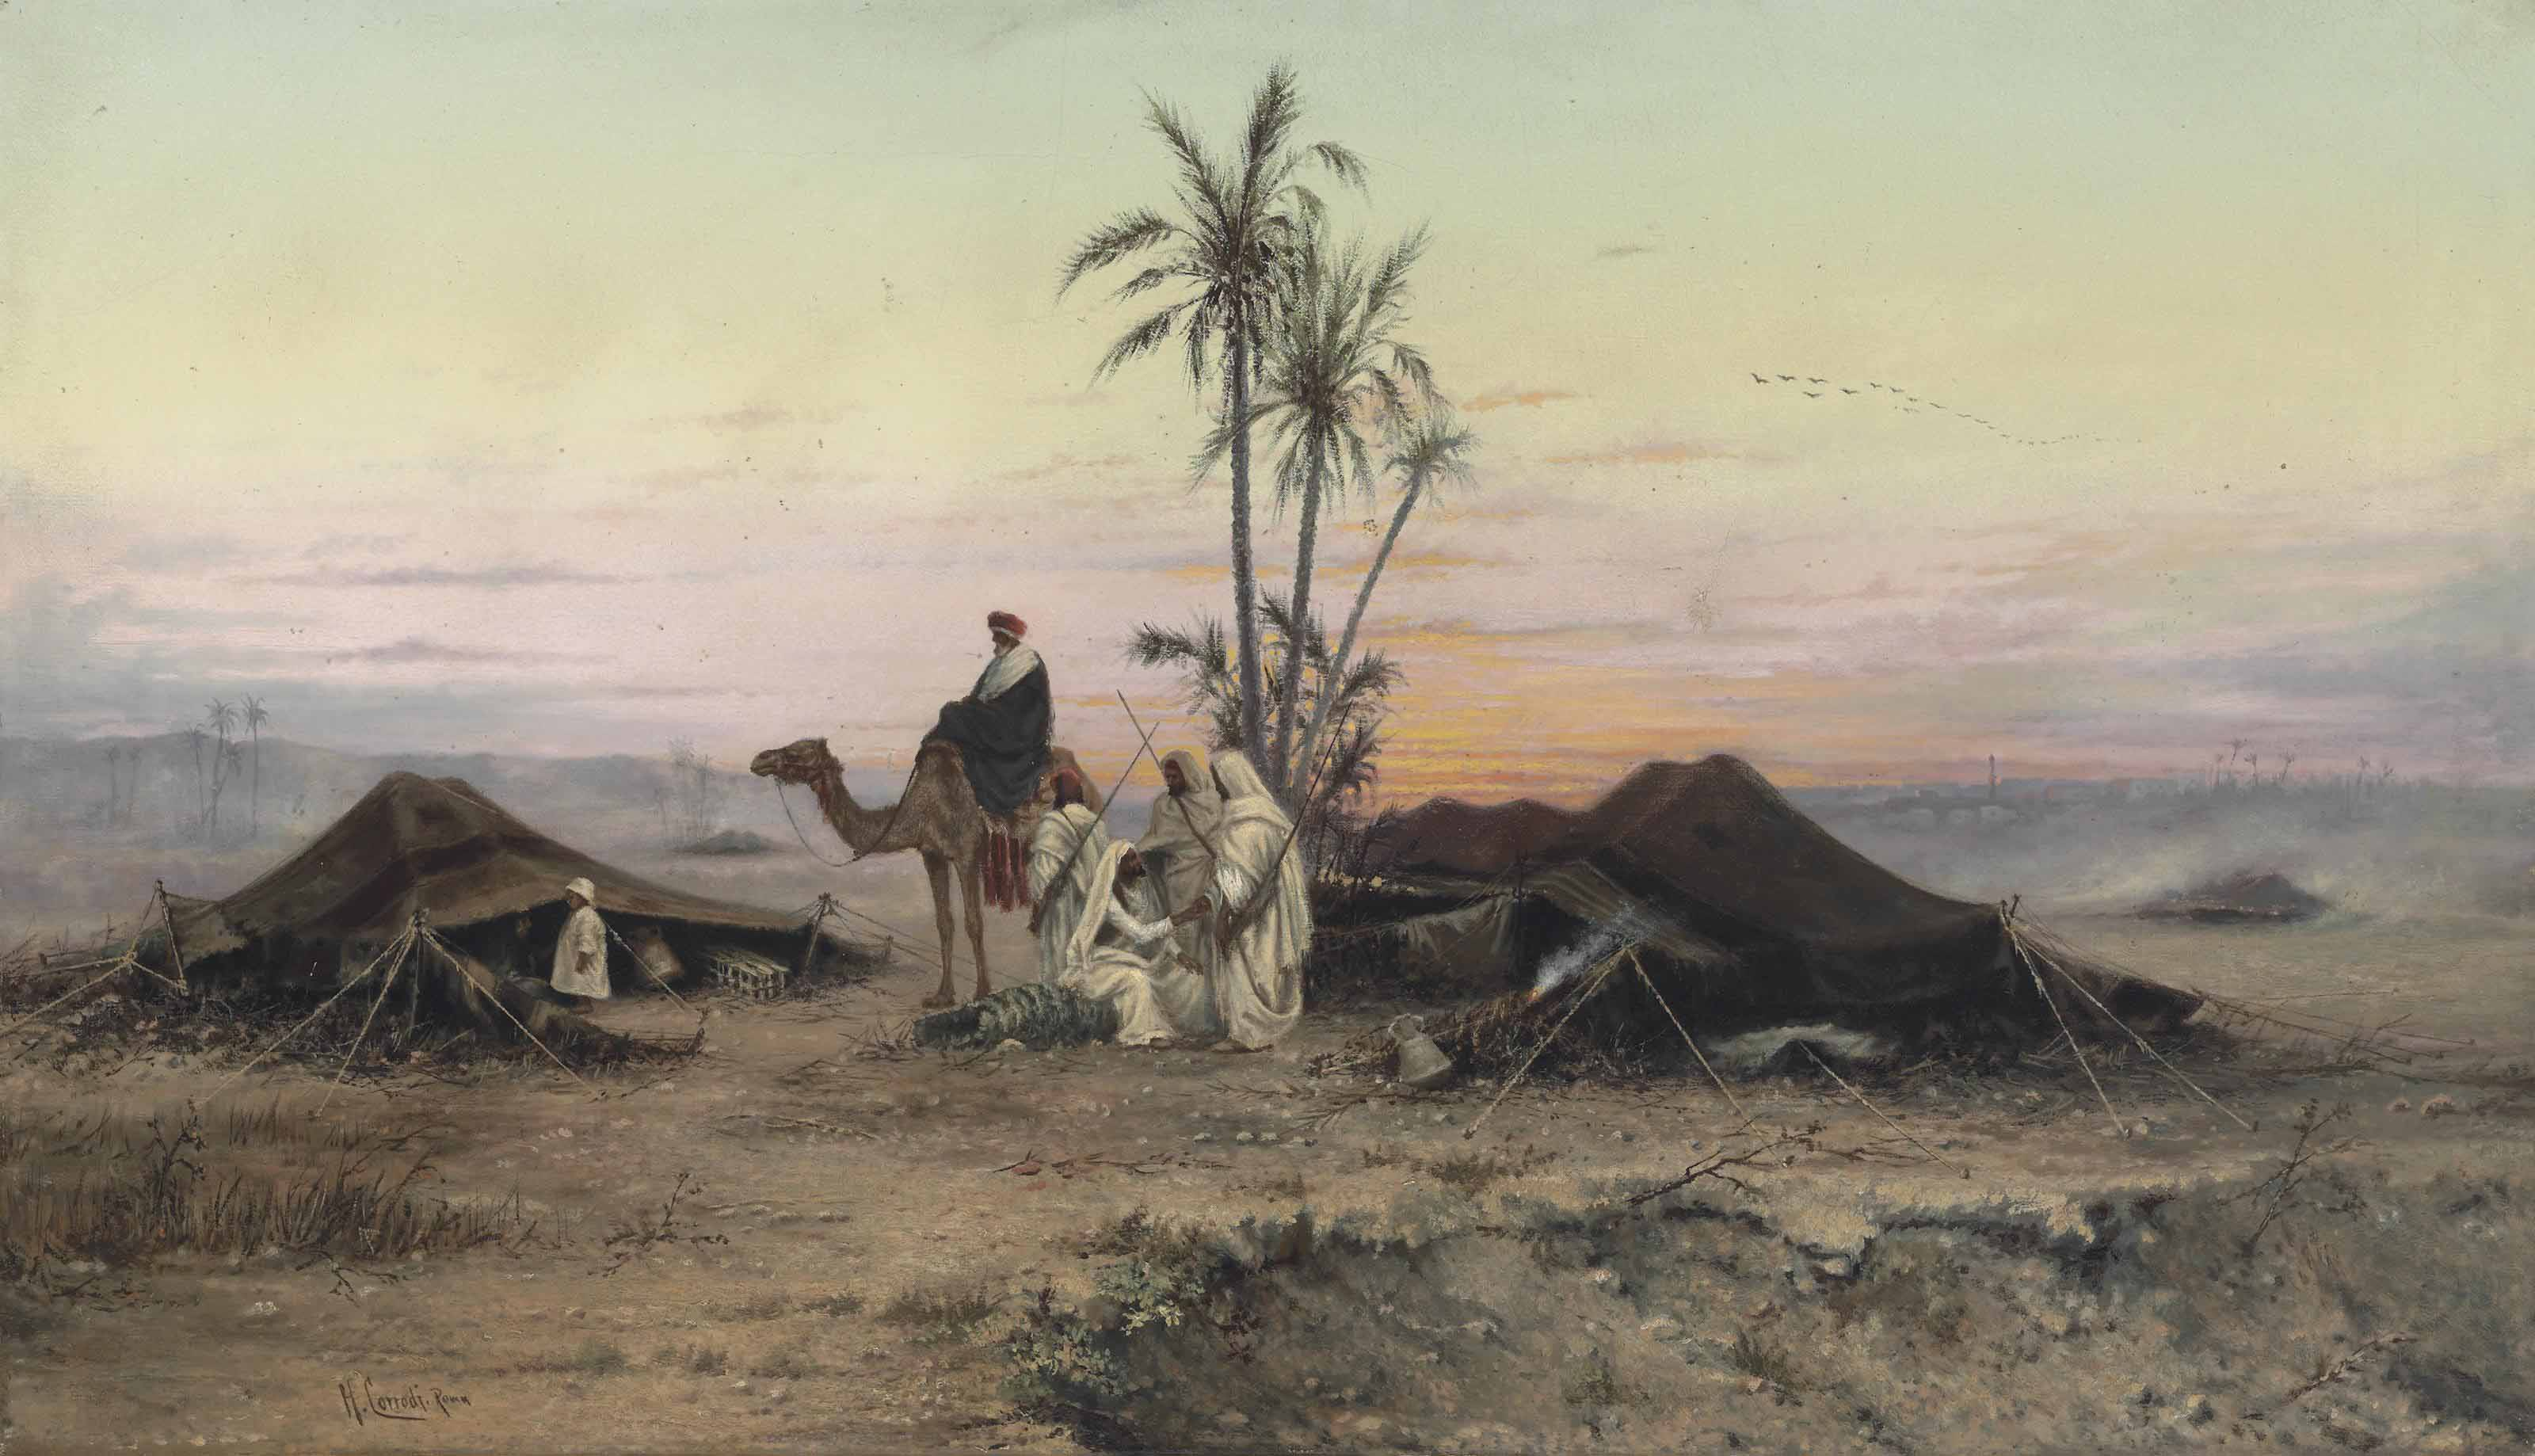 A Bedouin camp at dusk